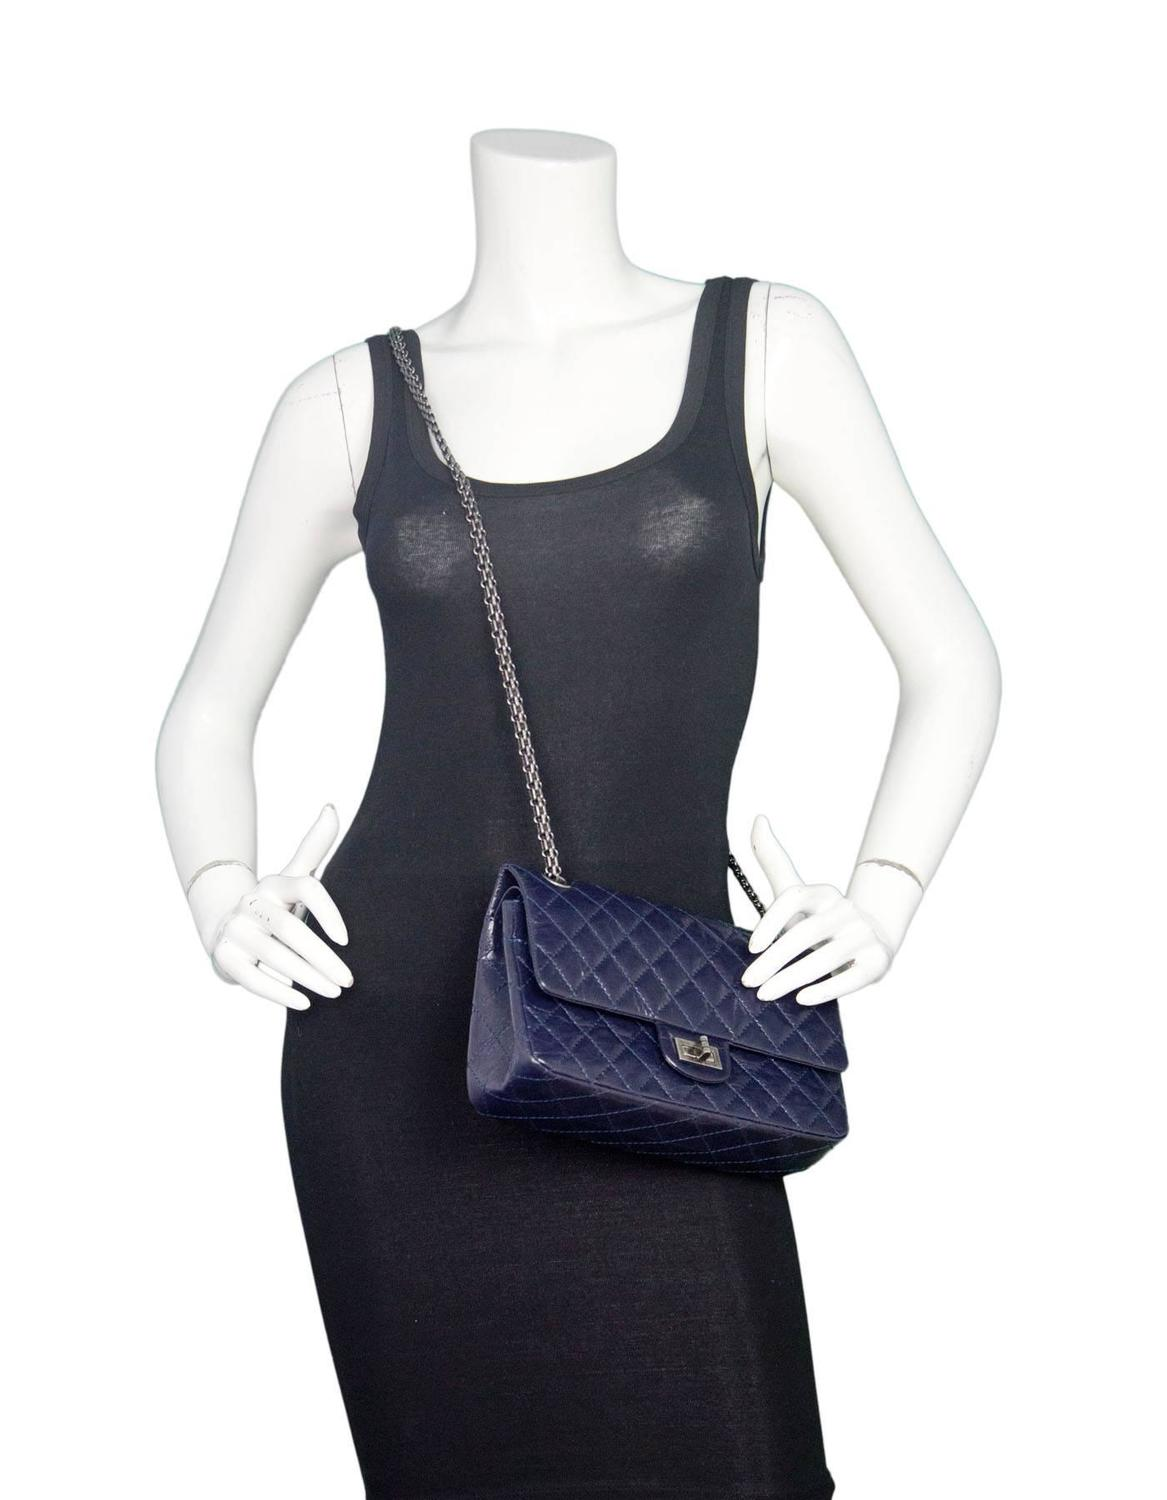 00ddf8d676c6 Chanel Navy Blue Patent Leather 2.55 225 Reissue Double Flap Classic Bag  For Sale at 1stdibs